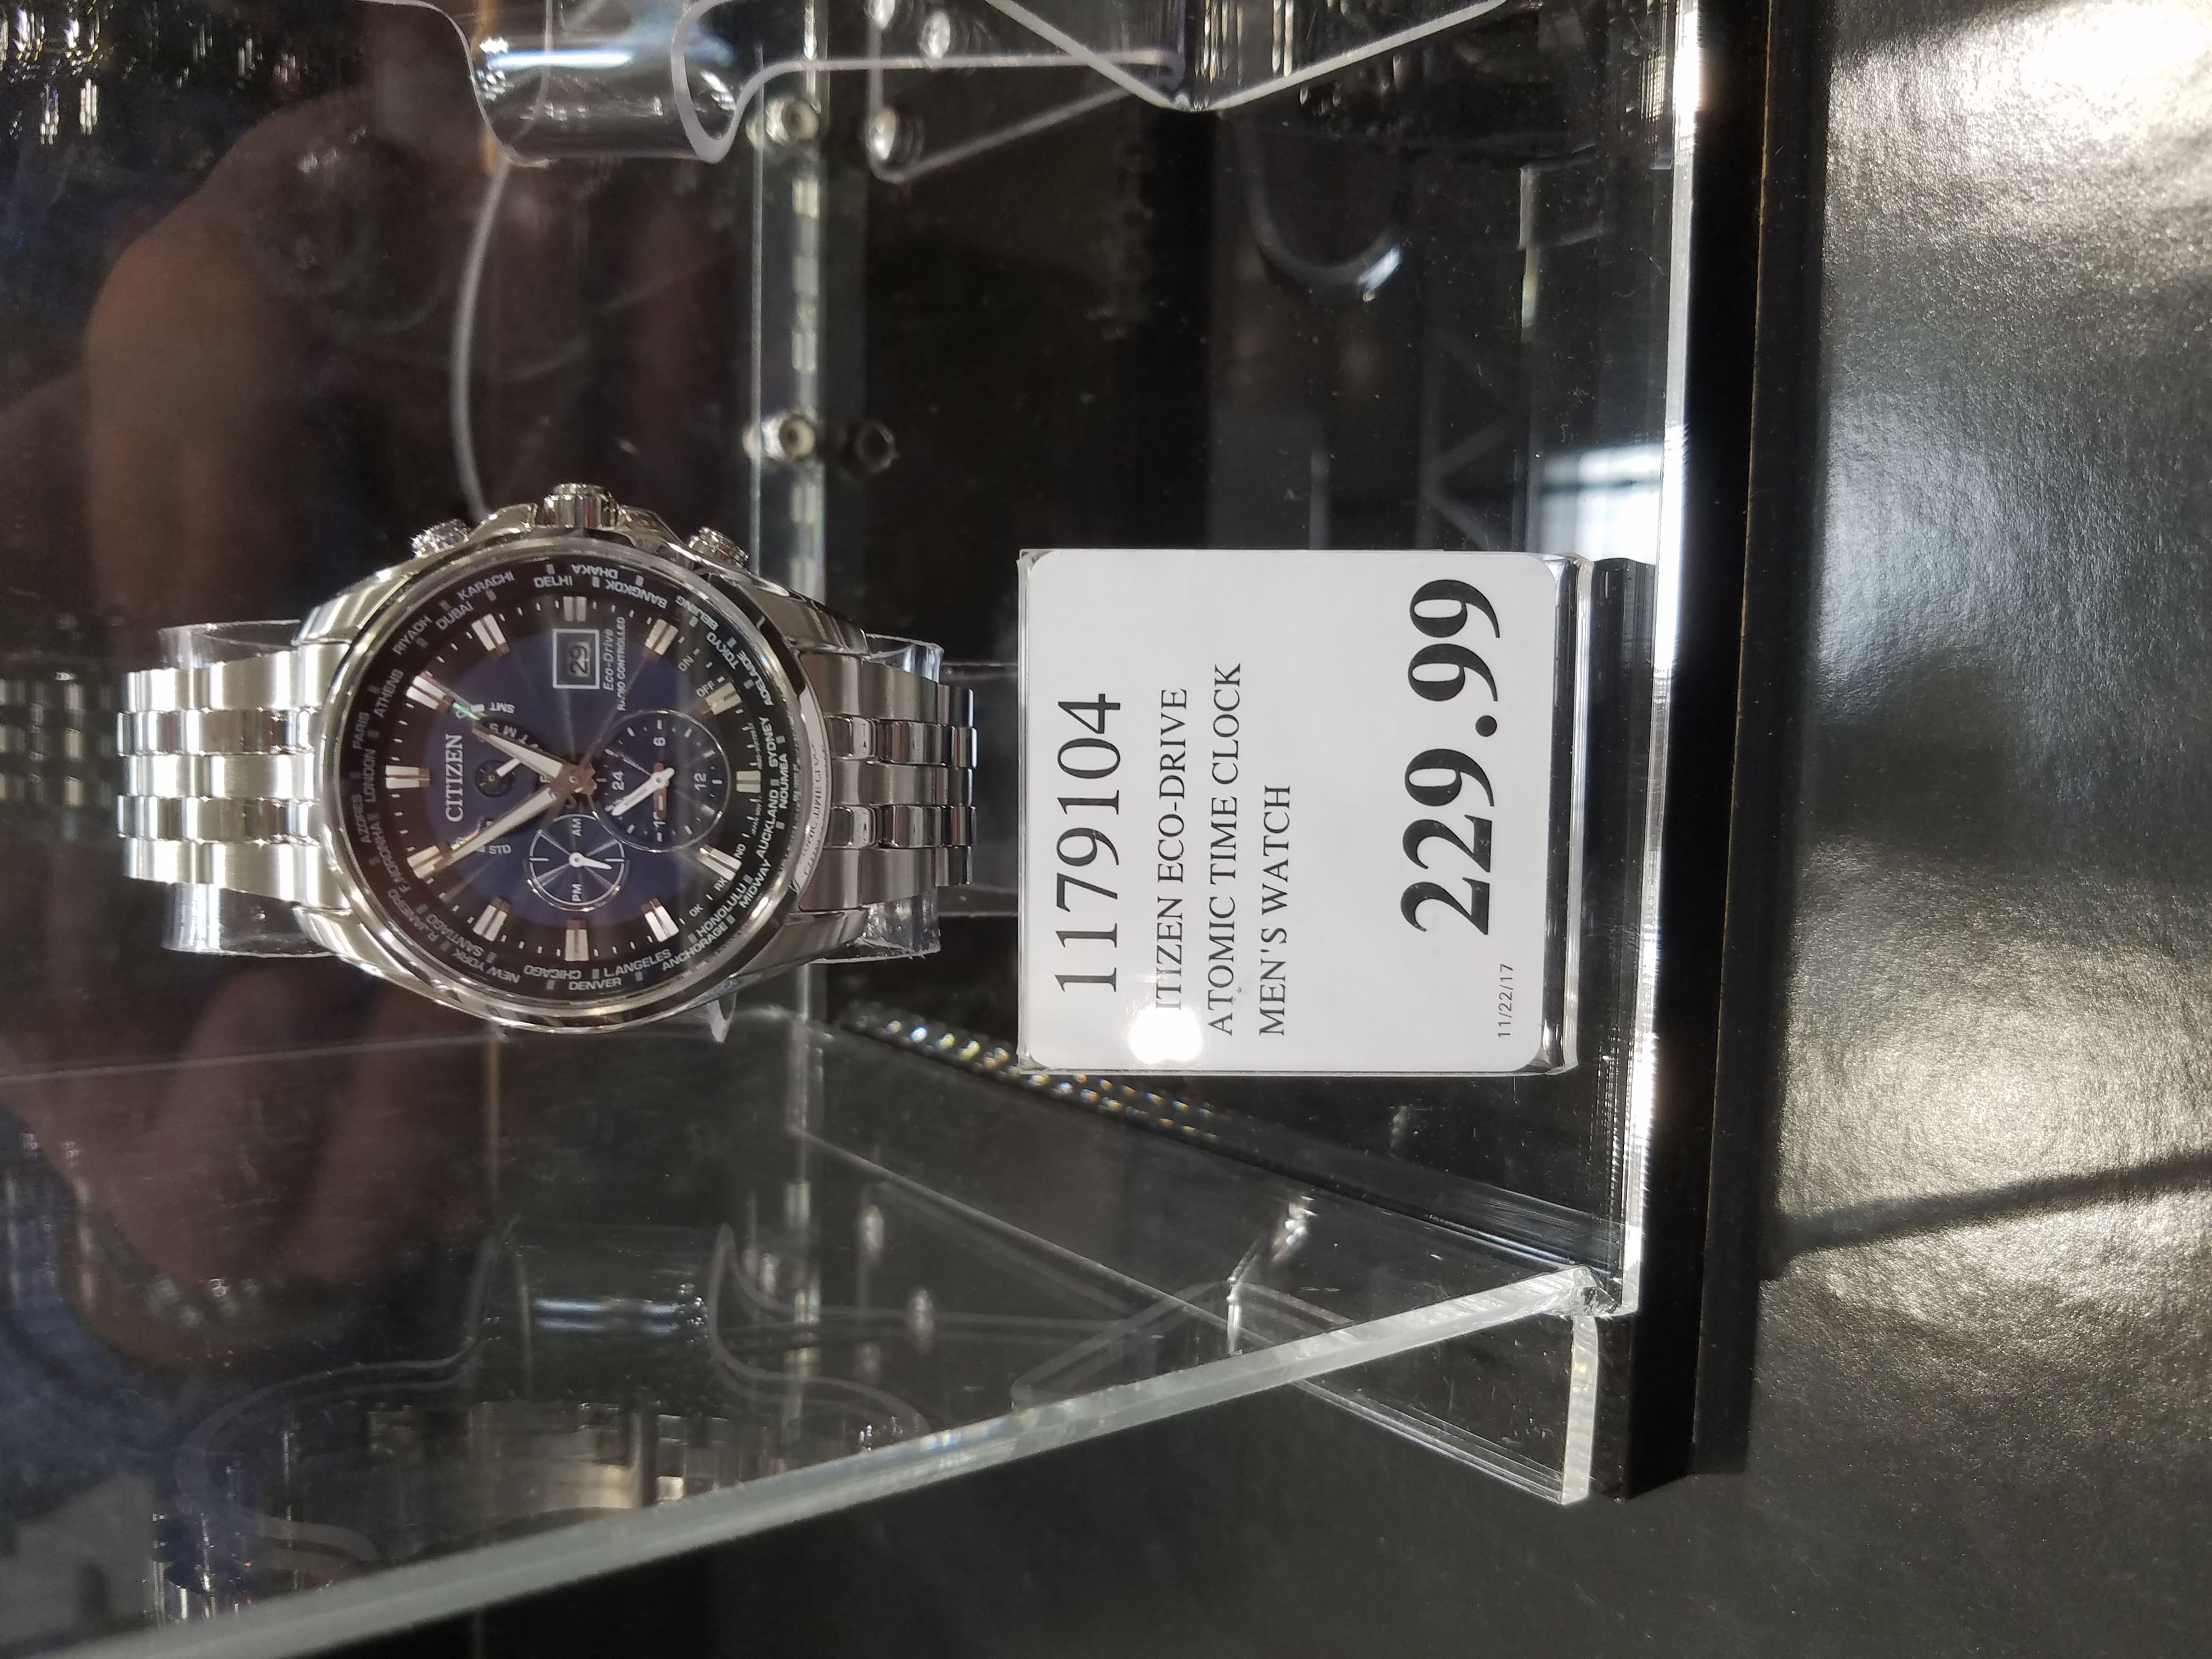 Citizen Eco-Drive Atomic WORLD TIME A-T Sapphire Crystal $230 @ Costco